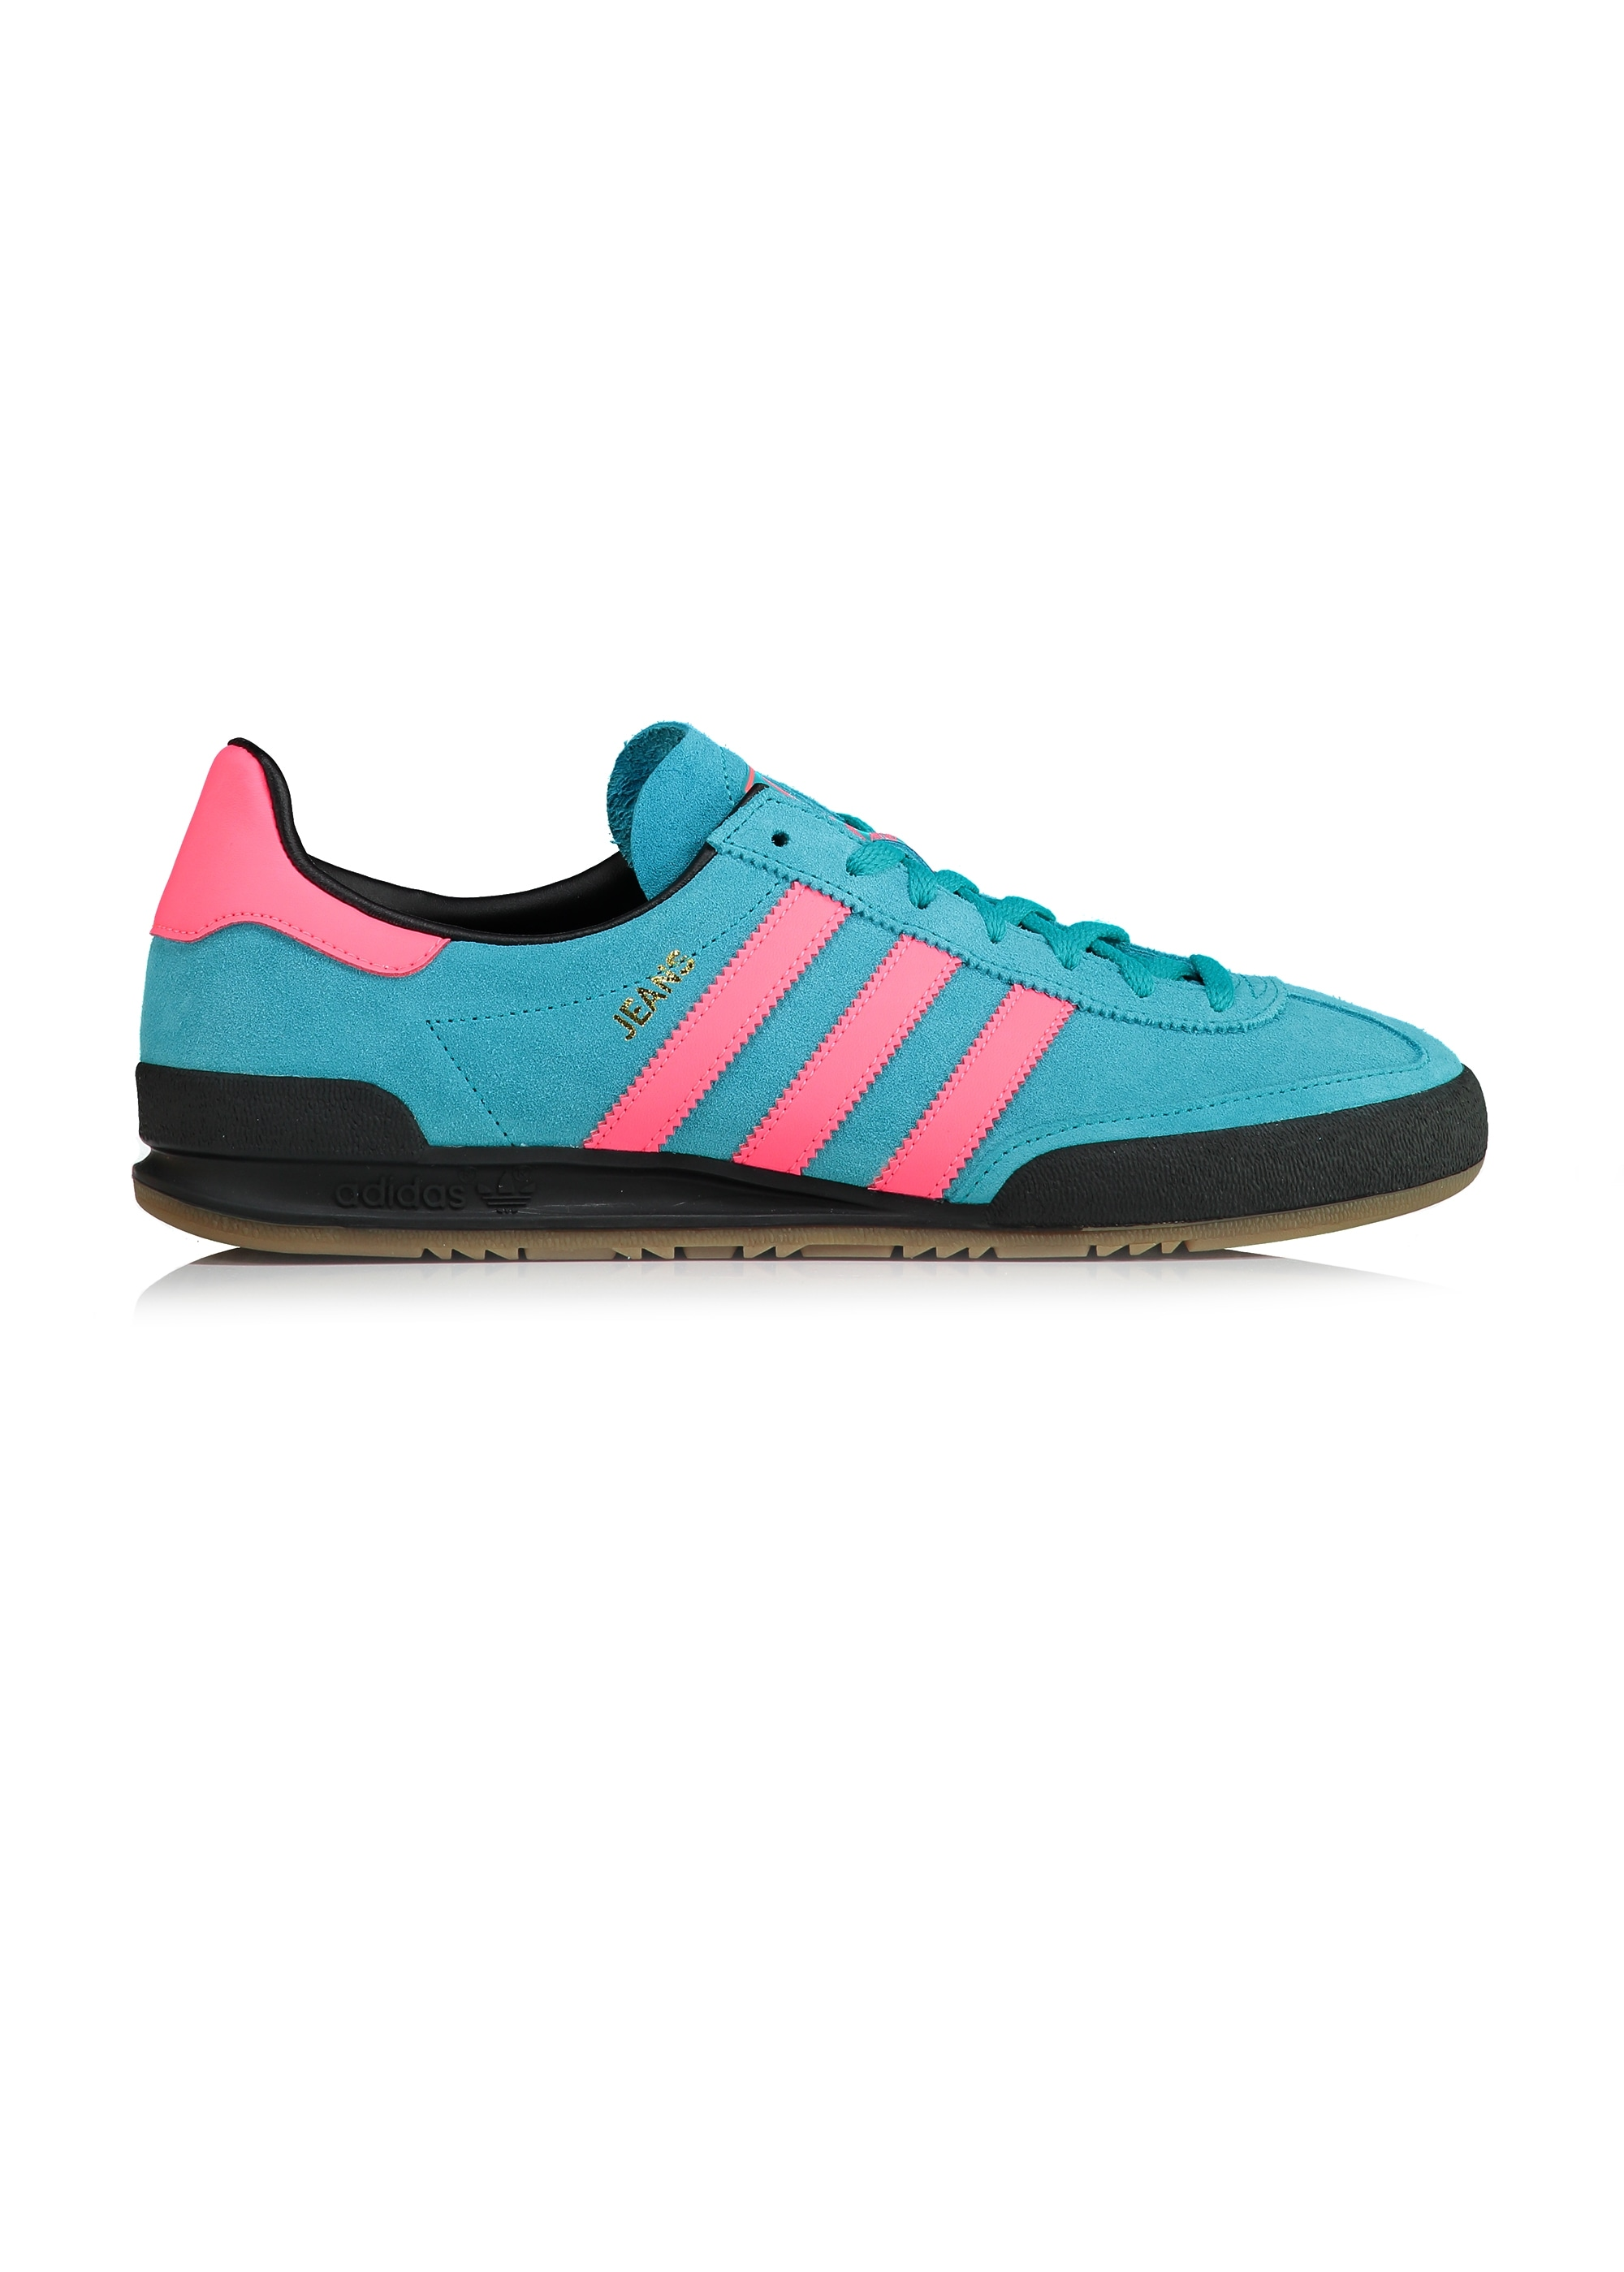 93319f965451 adidas Originals Footwear Adidas Originals Footwear Jeans- Energy ...